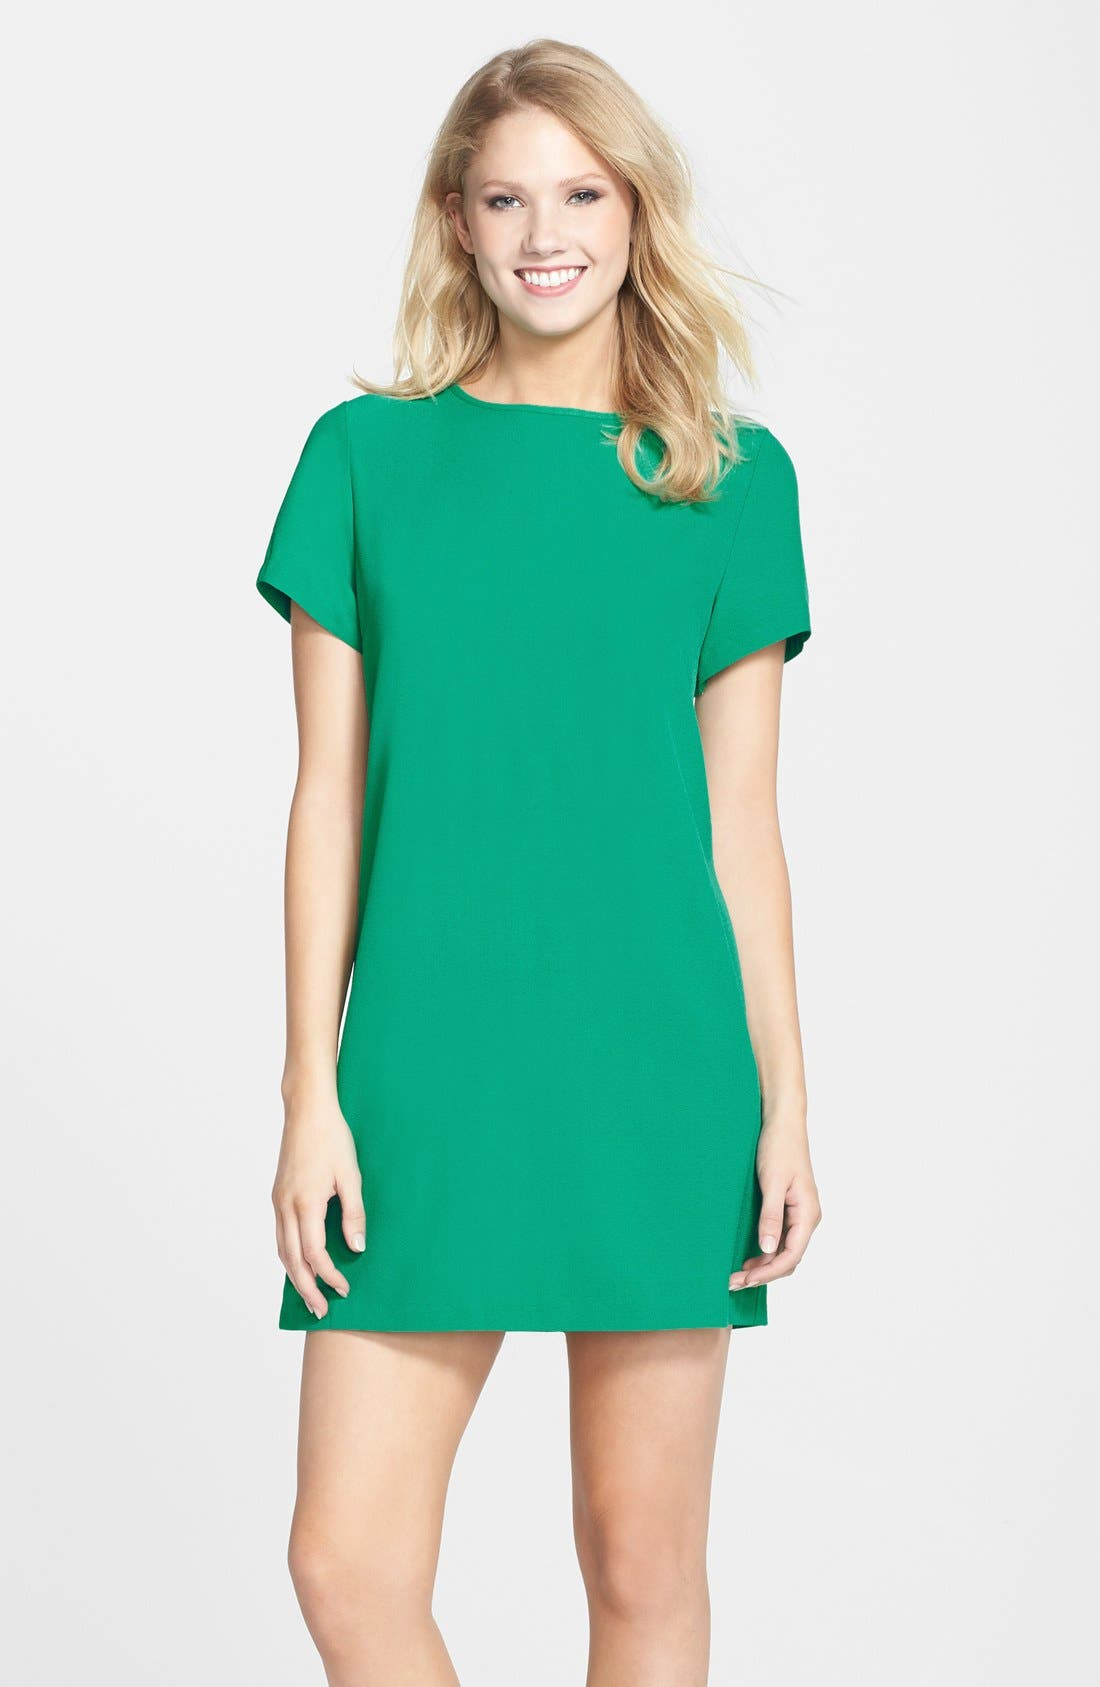 Alternate Image 1 Selected - Felicity & Coco Devery Crepe Shift Dress (Nordstrom Exclusive)